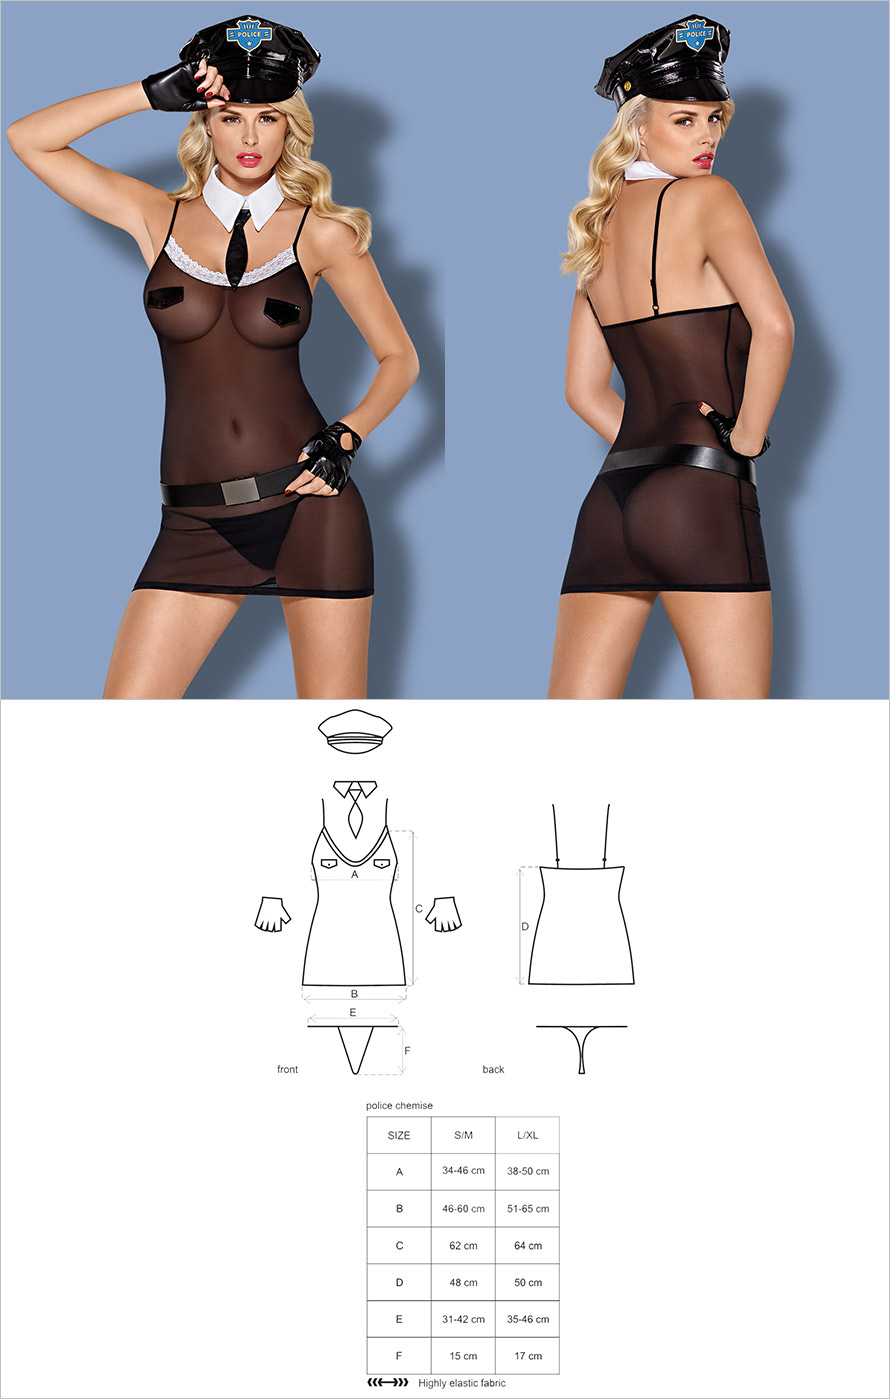 Obsessive Police Chemise Policewoman Costume (L/XL)